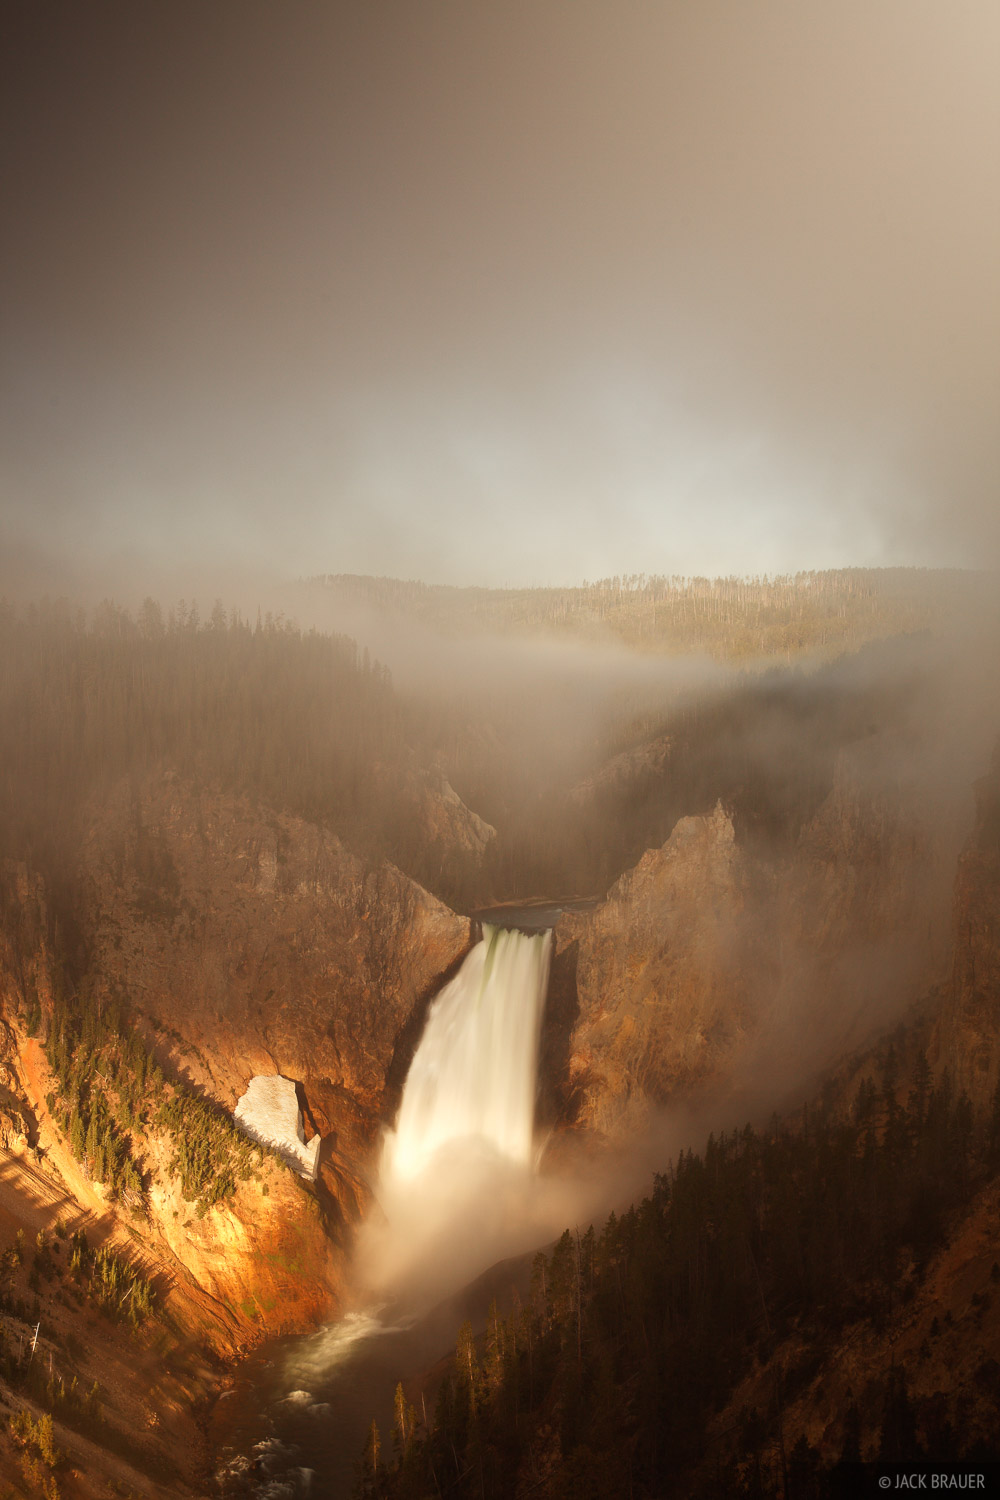 Grand Canyon of the Yellowstone, Yellowstone National Park, Wyoming, sunrise, waterfall, Lookout Point, photo